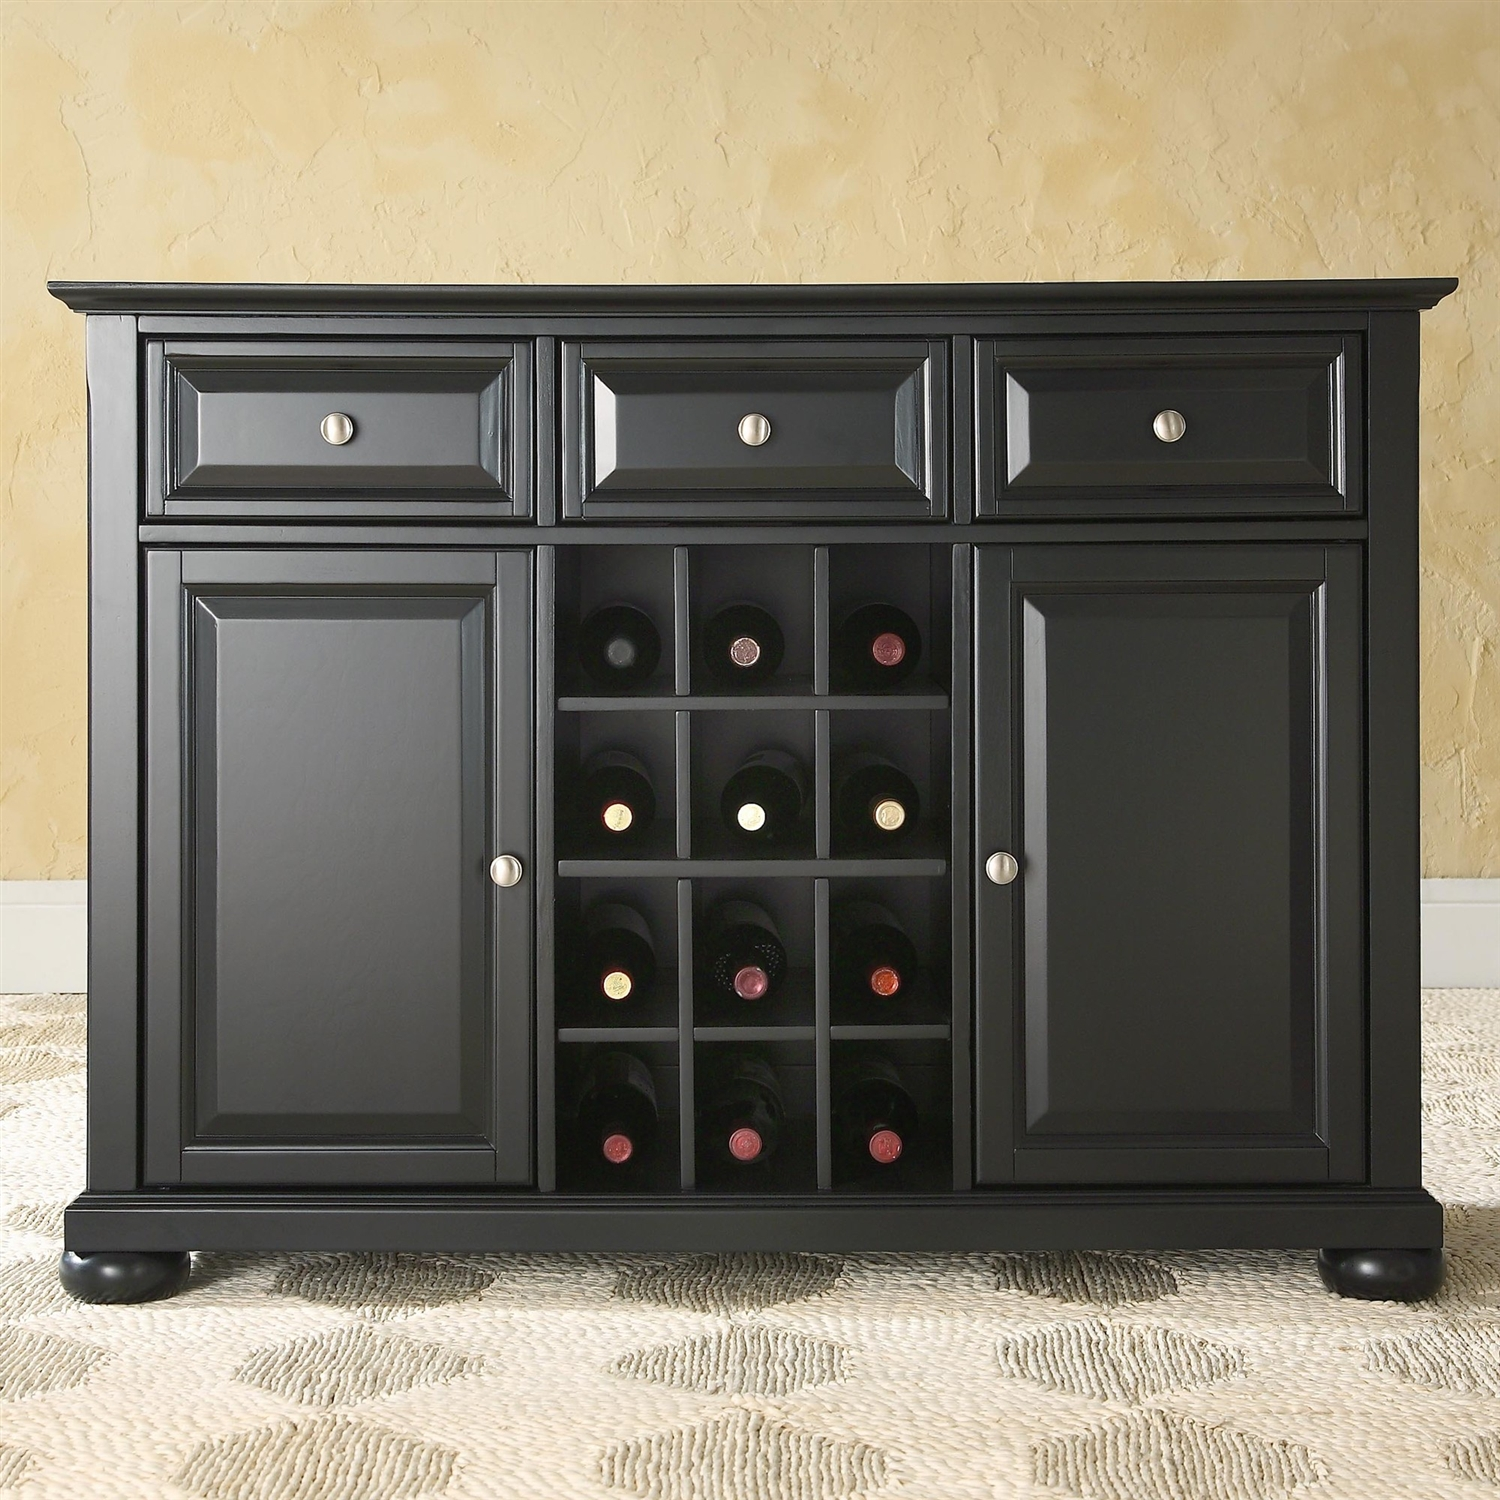 Black dining room buffet sideboard cabinet with wine storage fastfurnishings com